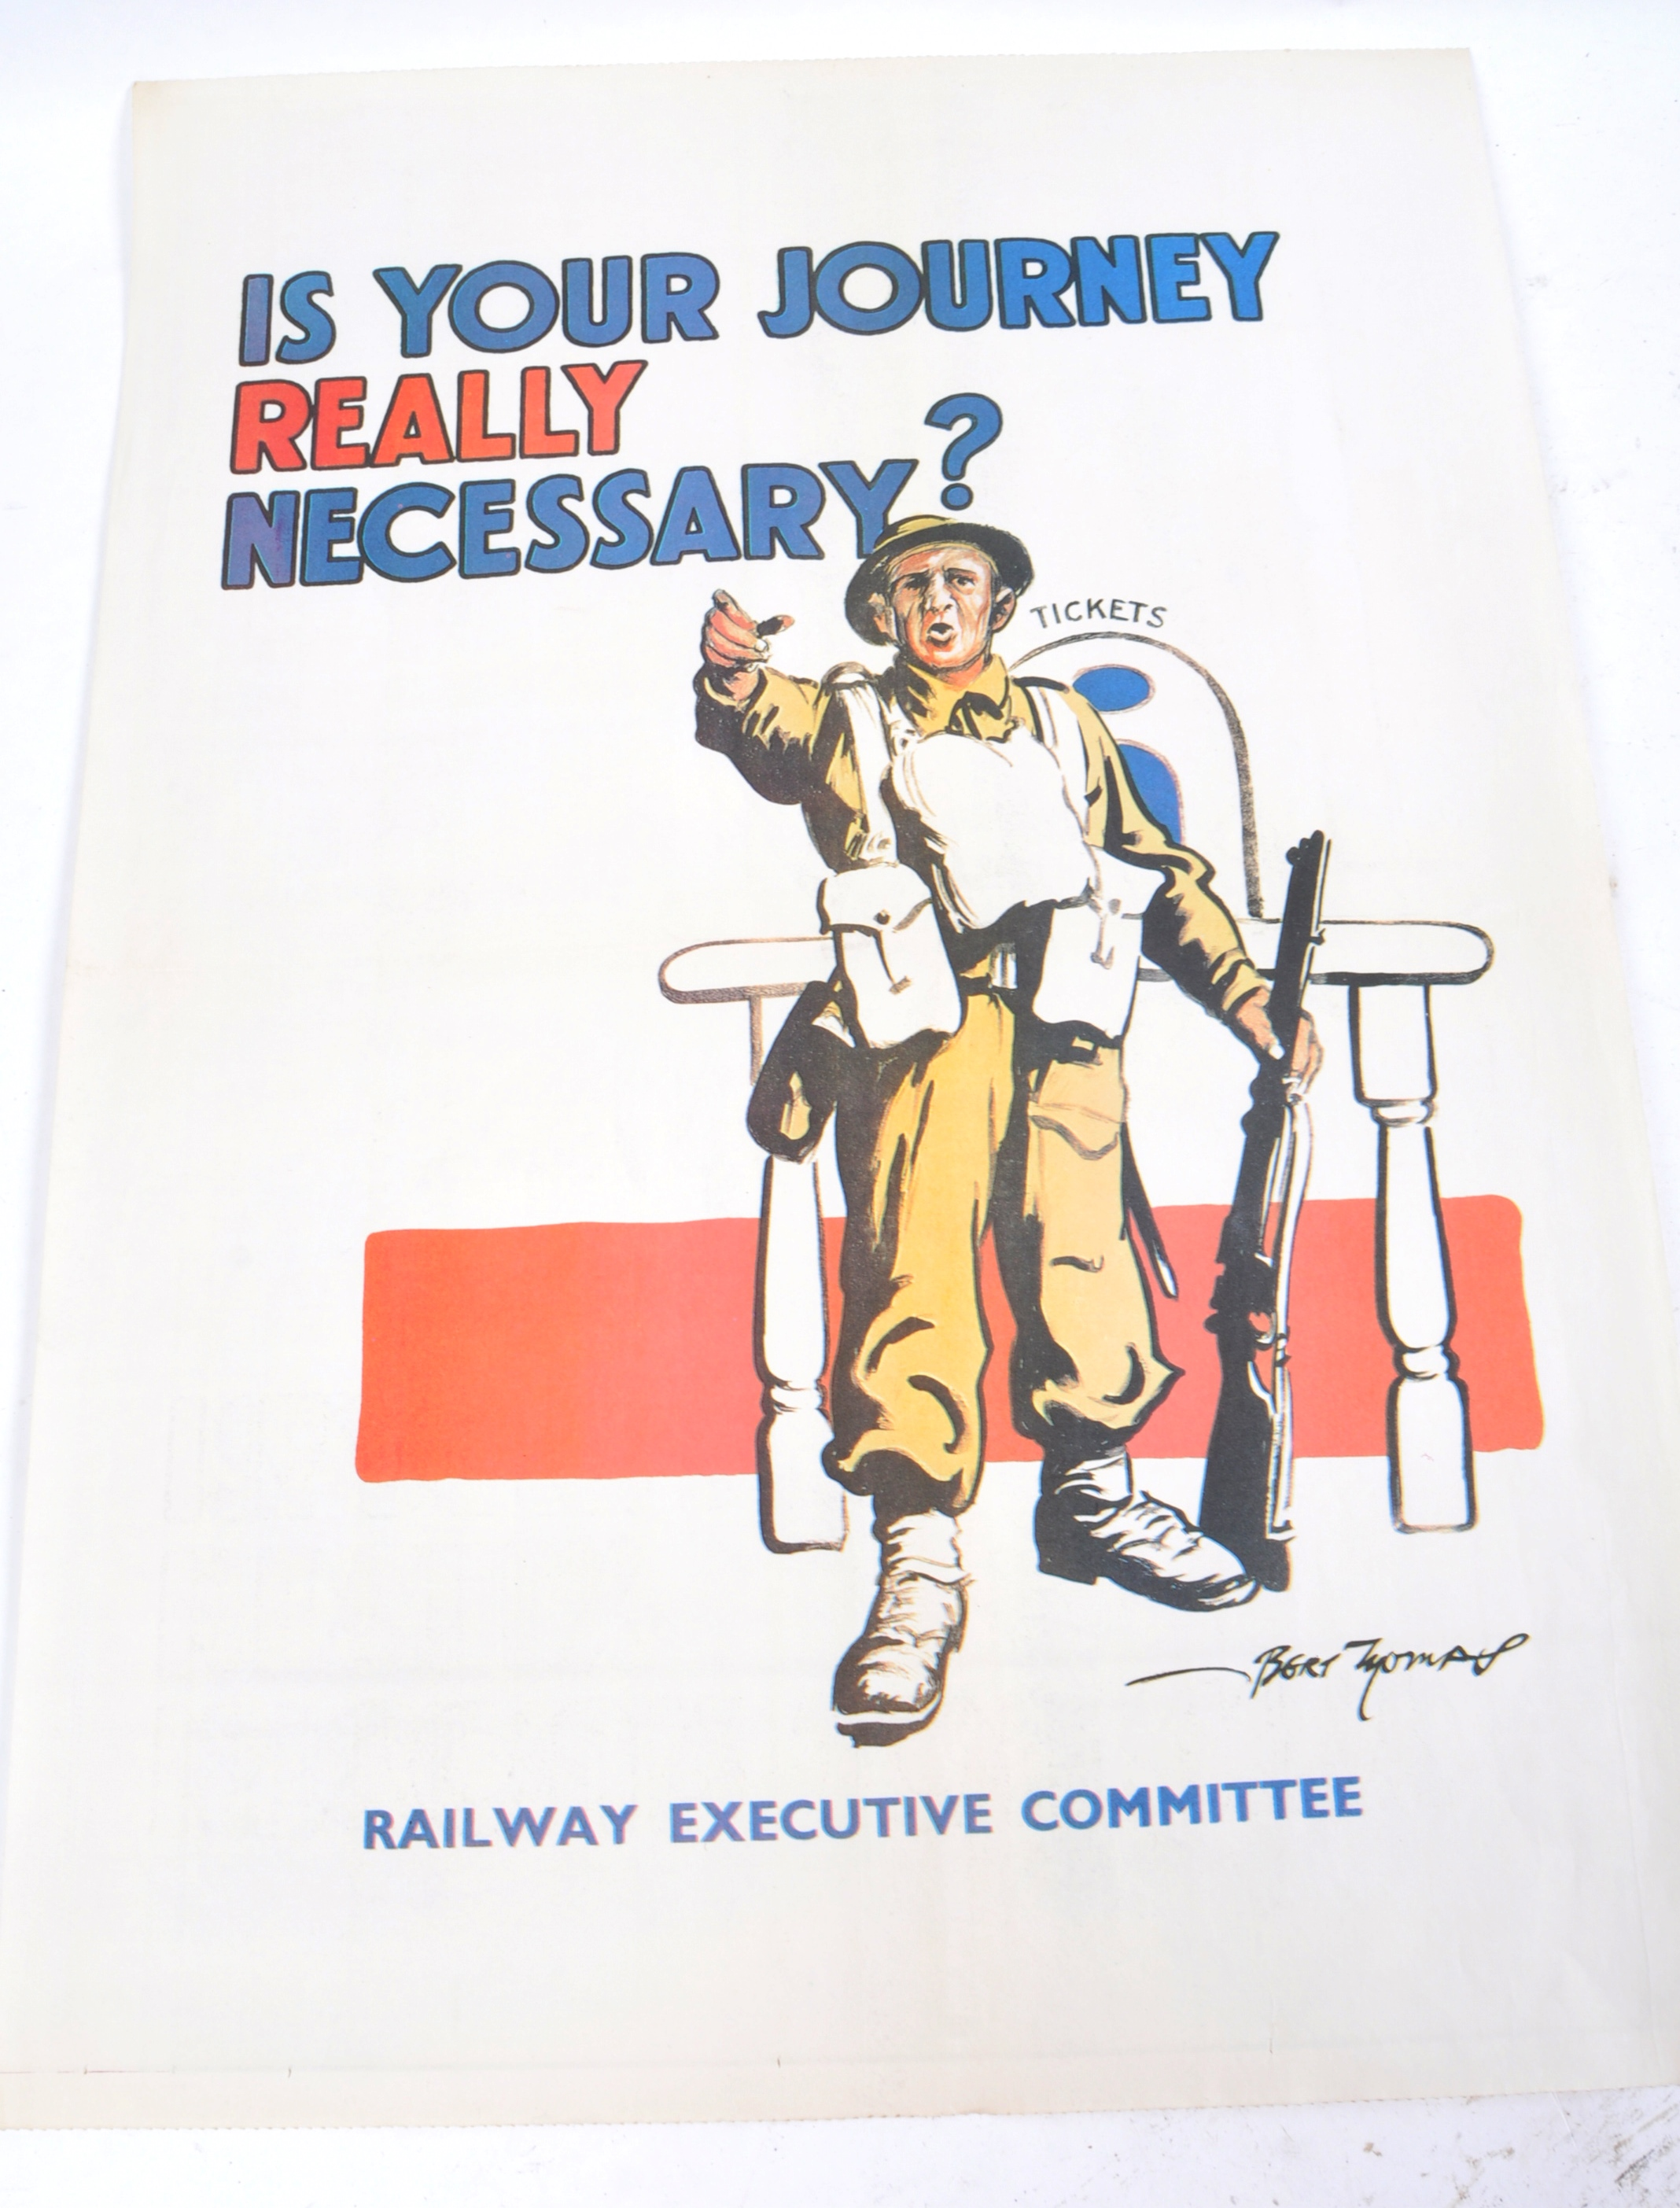 WWII SECOND WORLD WAR POSTERS - CHURCHILL, AFS, HOME FRONT ETC - Image 4 of 6